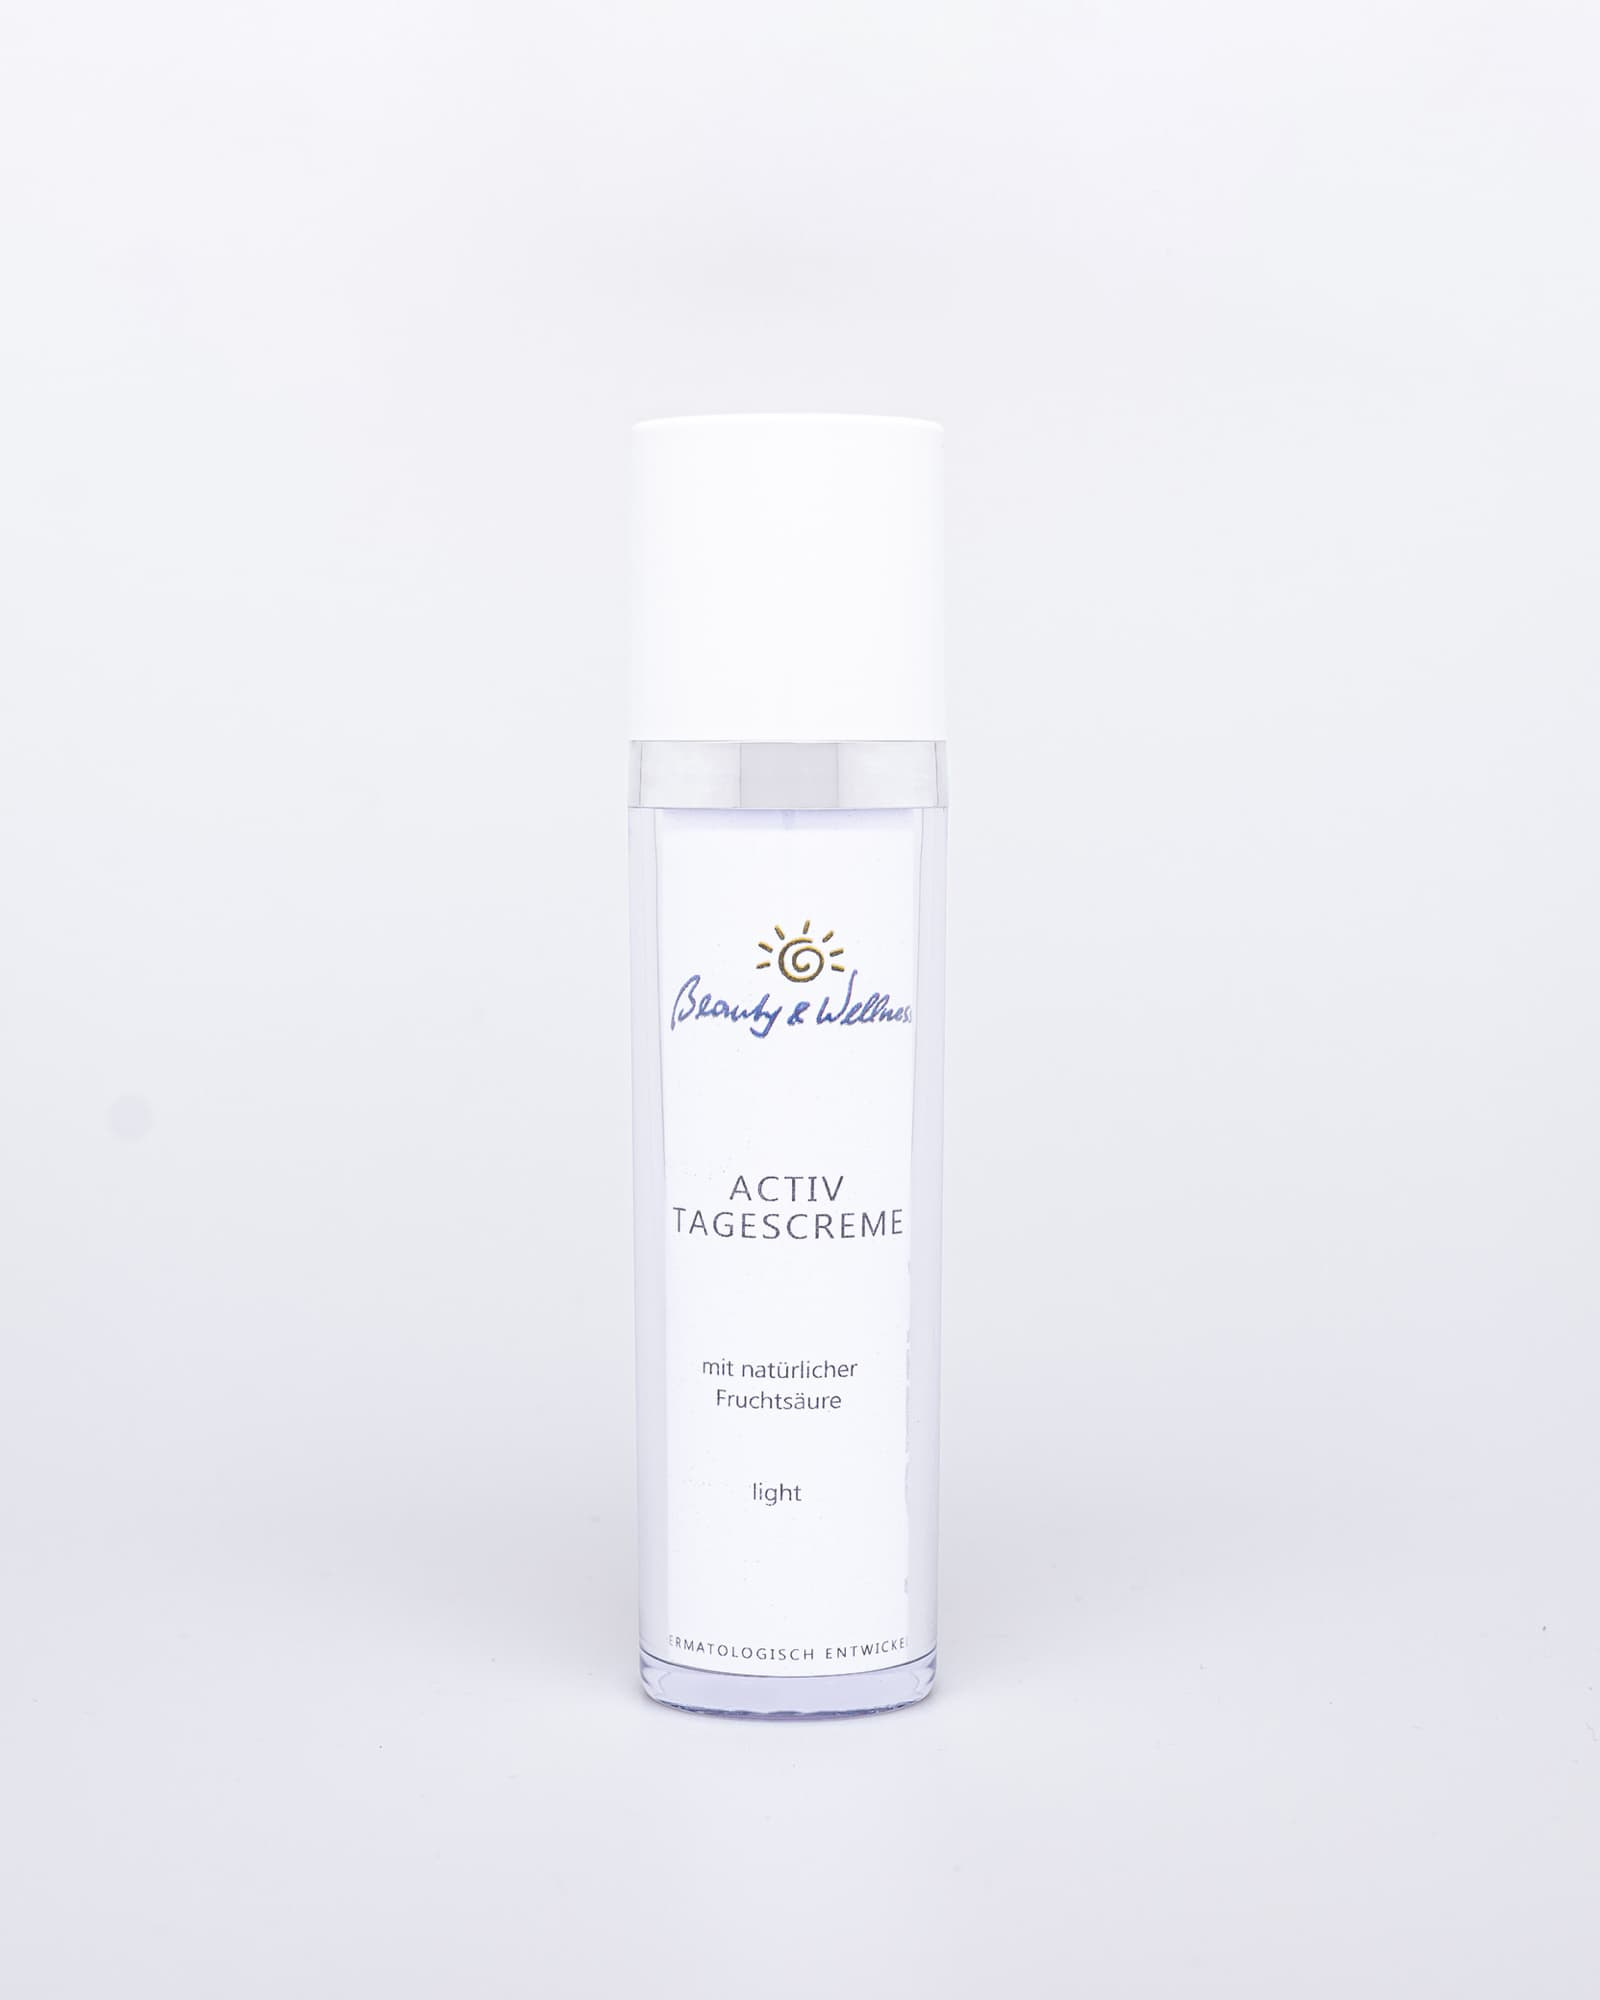 Active Tagescreme light 50ml Airless Spender Beauty Wellness